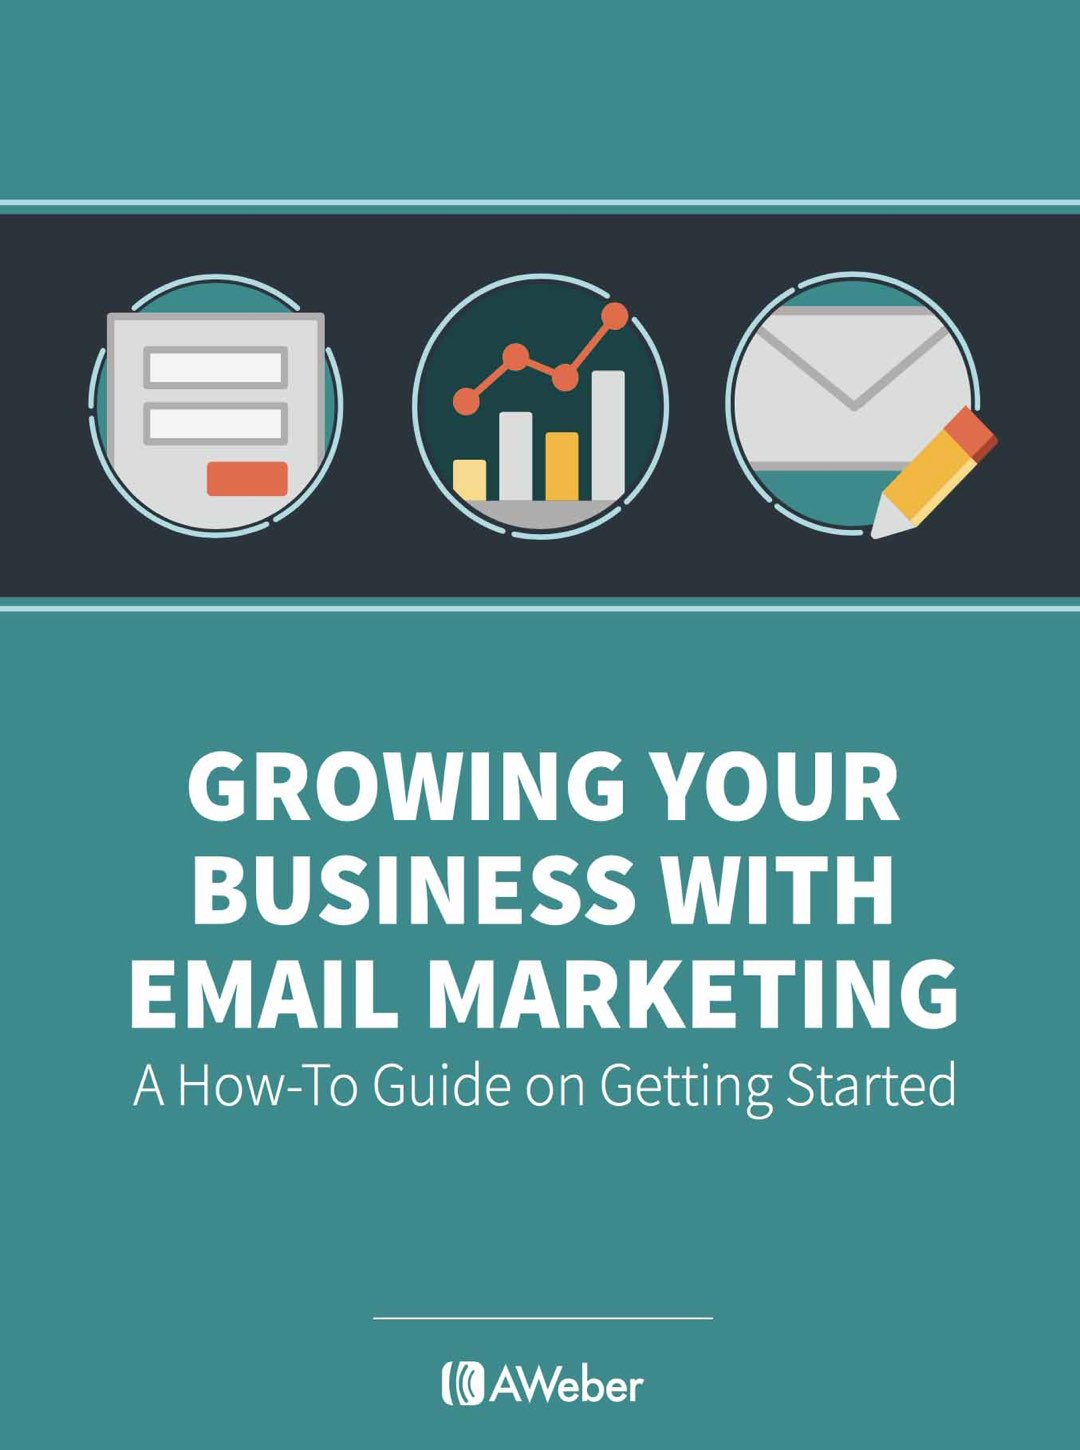 Grow your business with Email Marketing